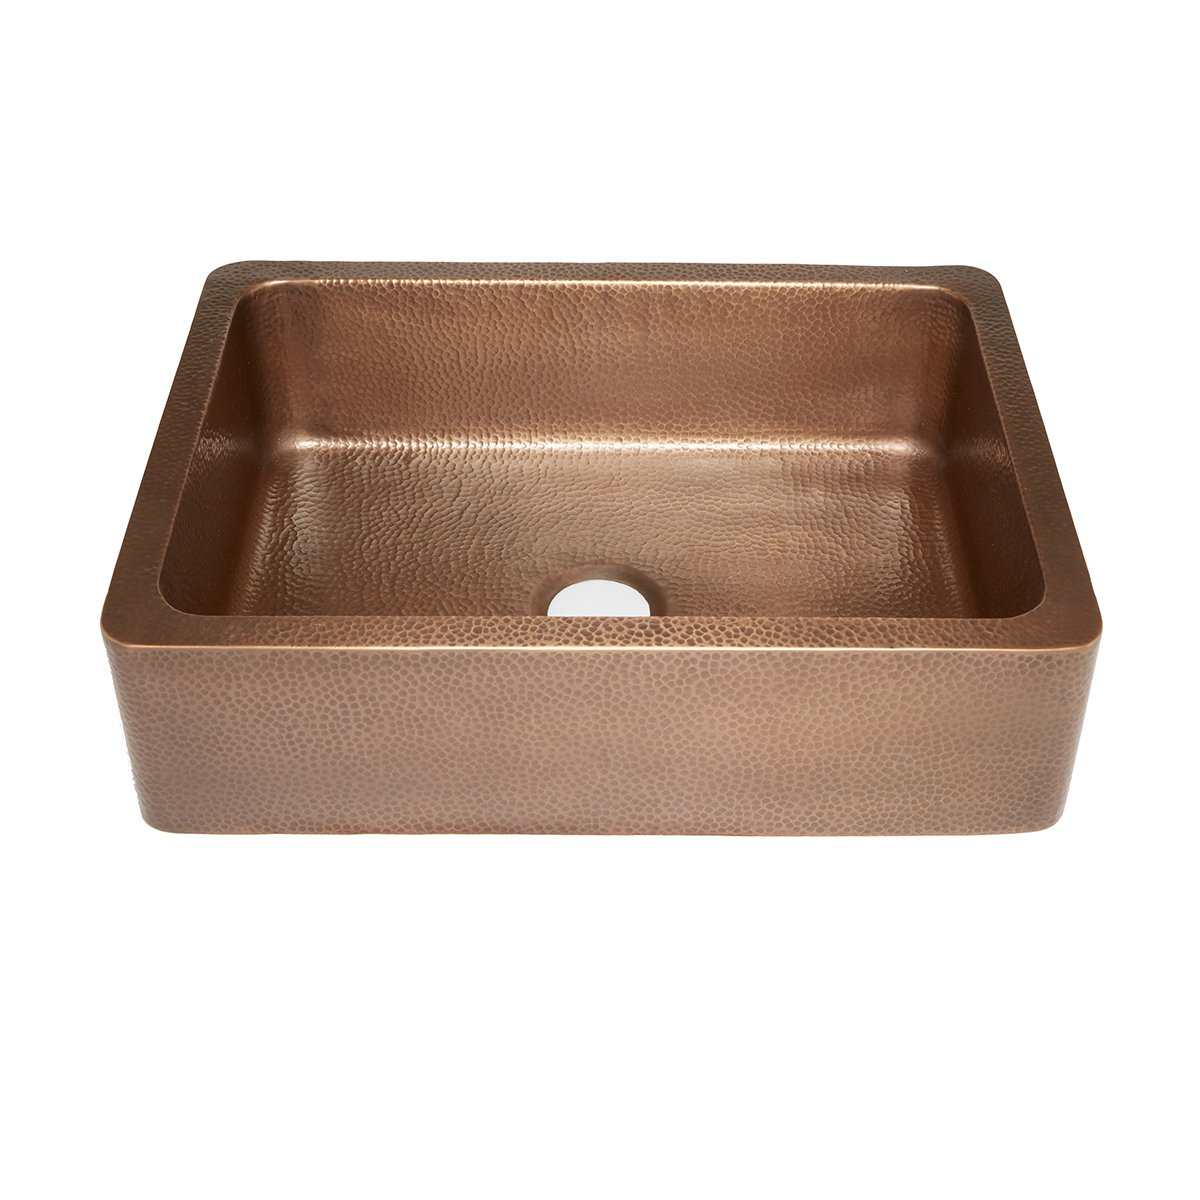 Sinkology Sk302 30ac Courbet Farmhouse Apron Front Handmade Single Bowl Kitchen Sink 30